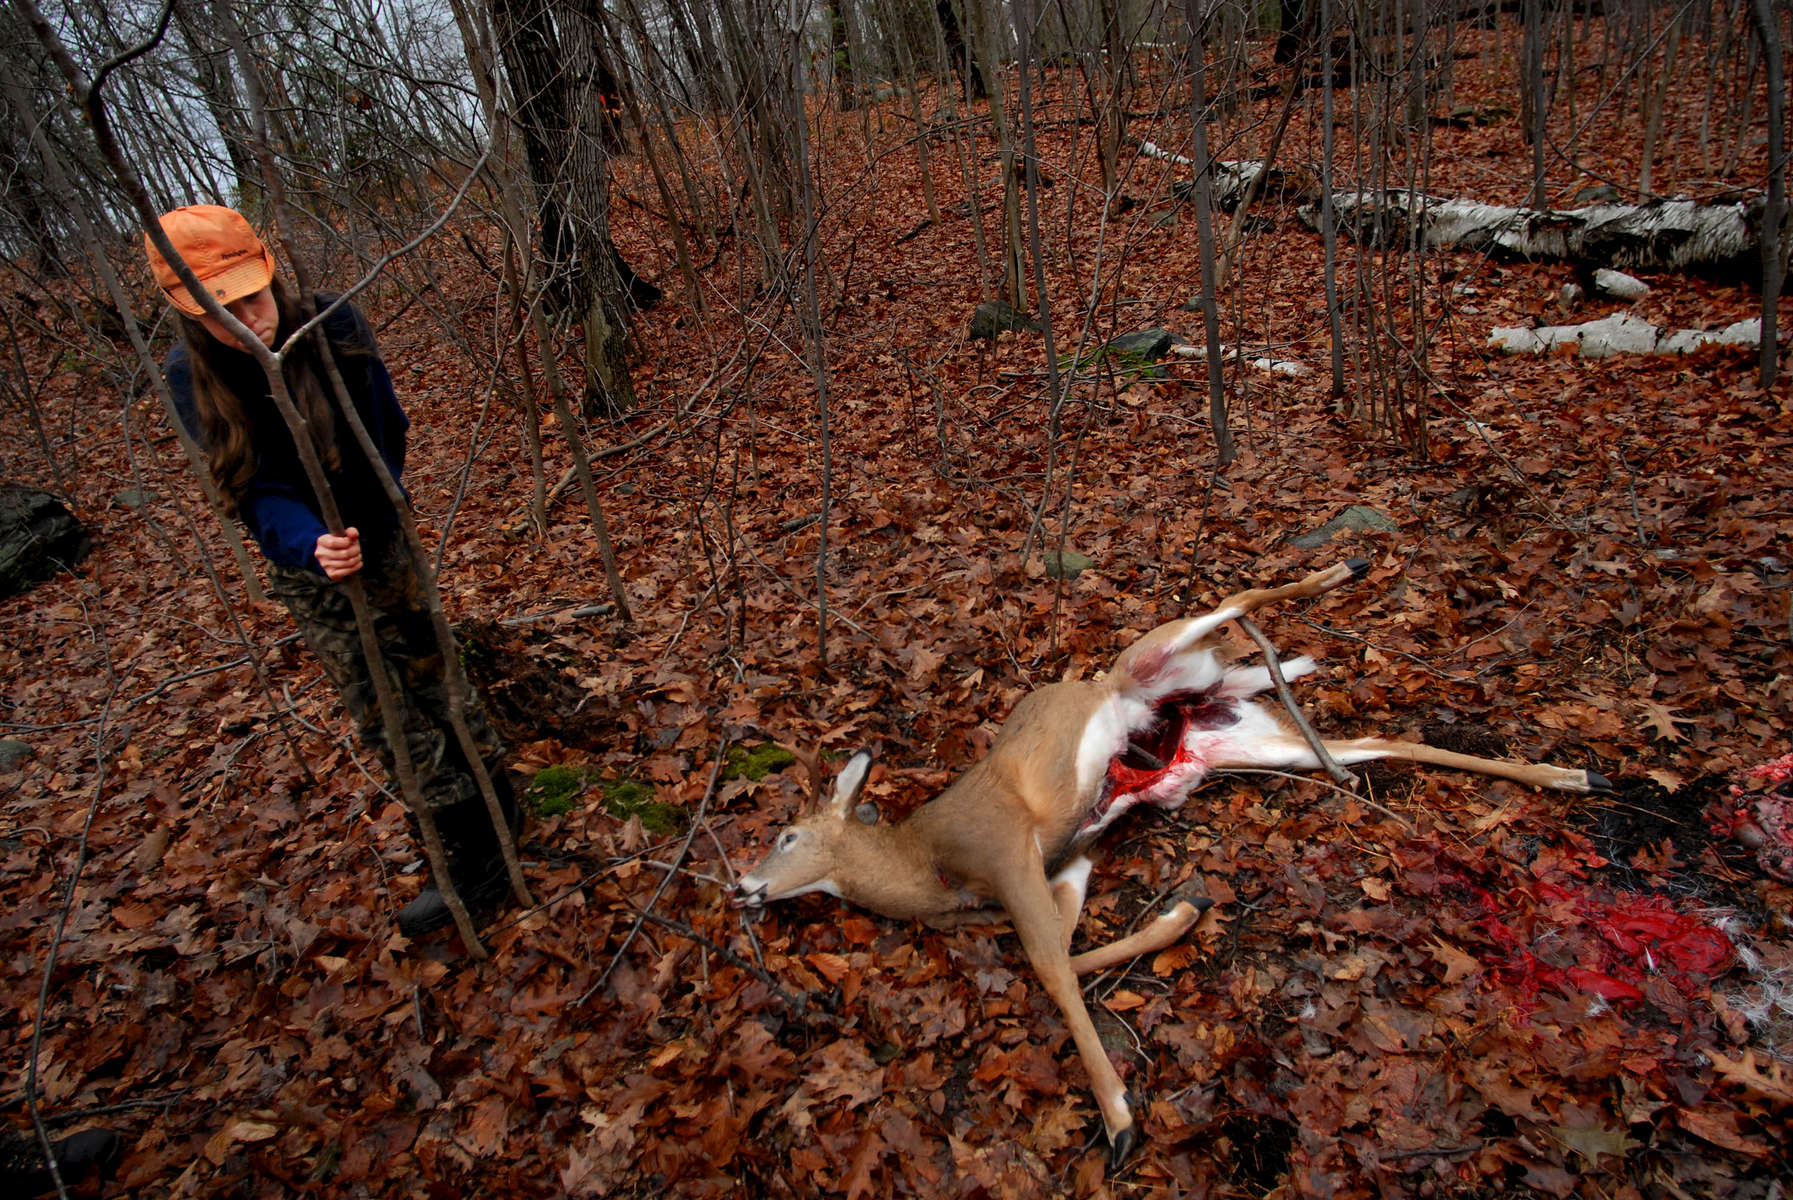 It's an emotional sight for Beth Irwin, 13, as she stands by a deer that had been recently shot on opening day of hunting season. Irwin was out hunting with her father, Tim, who was passing on the tradition of hunting to Irwin.